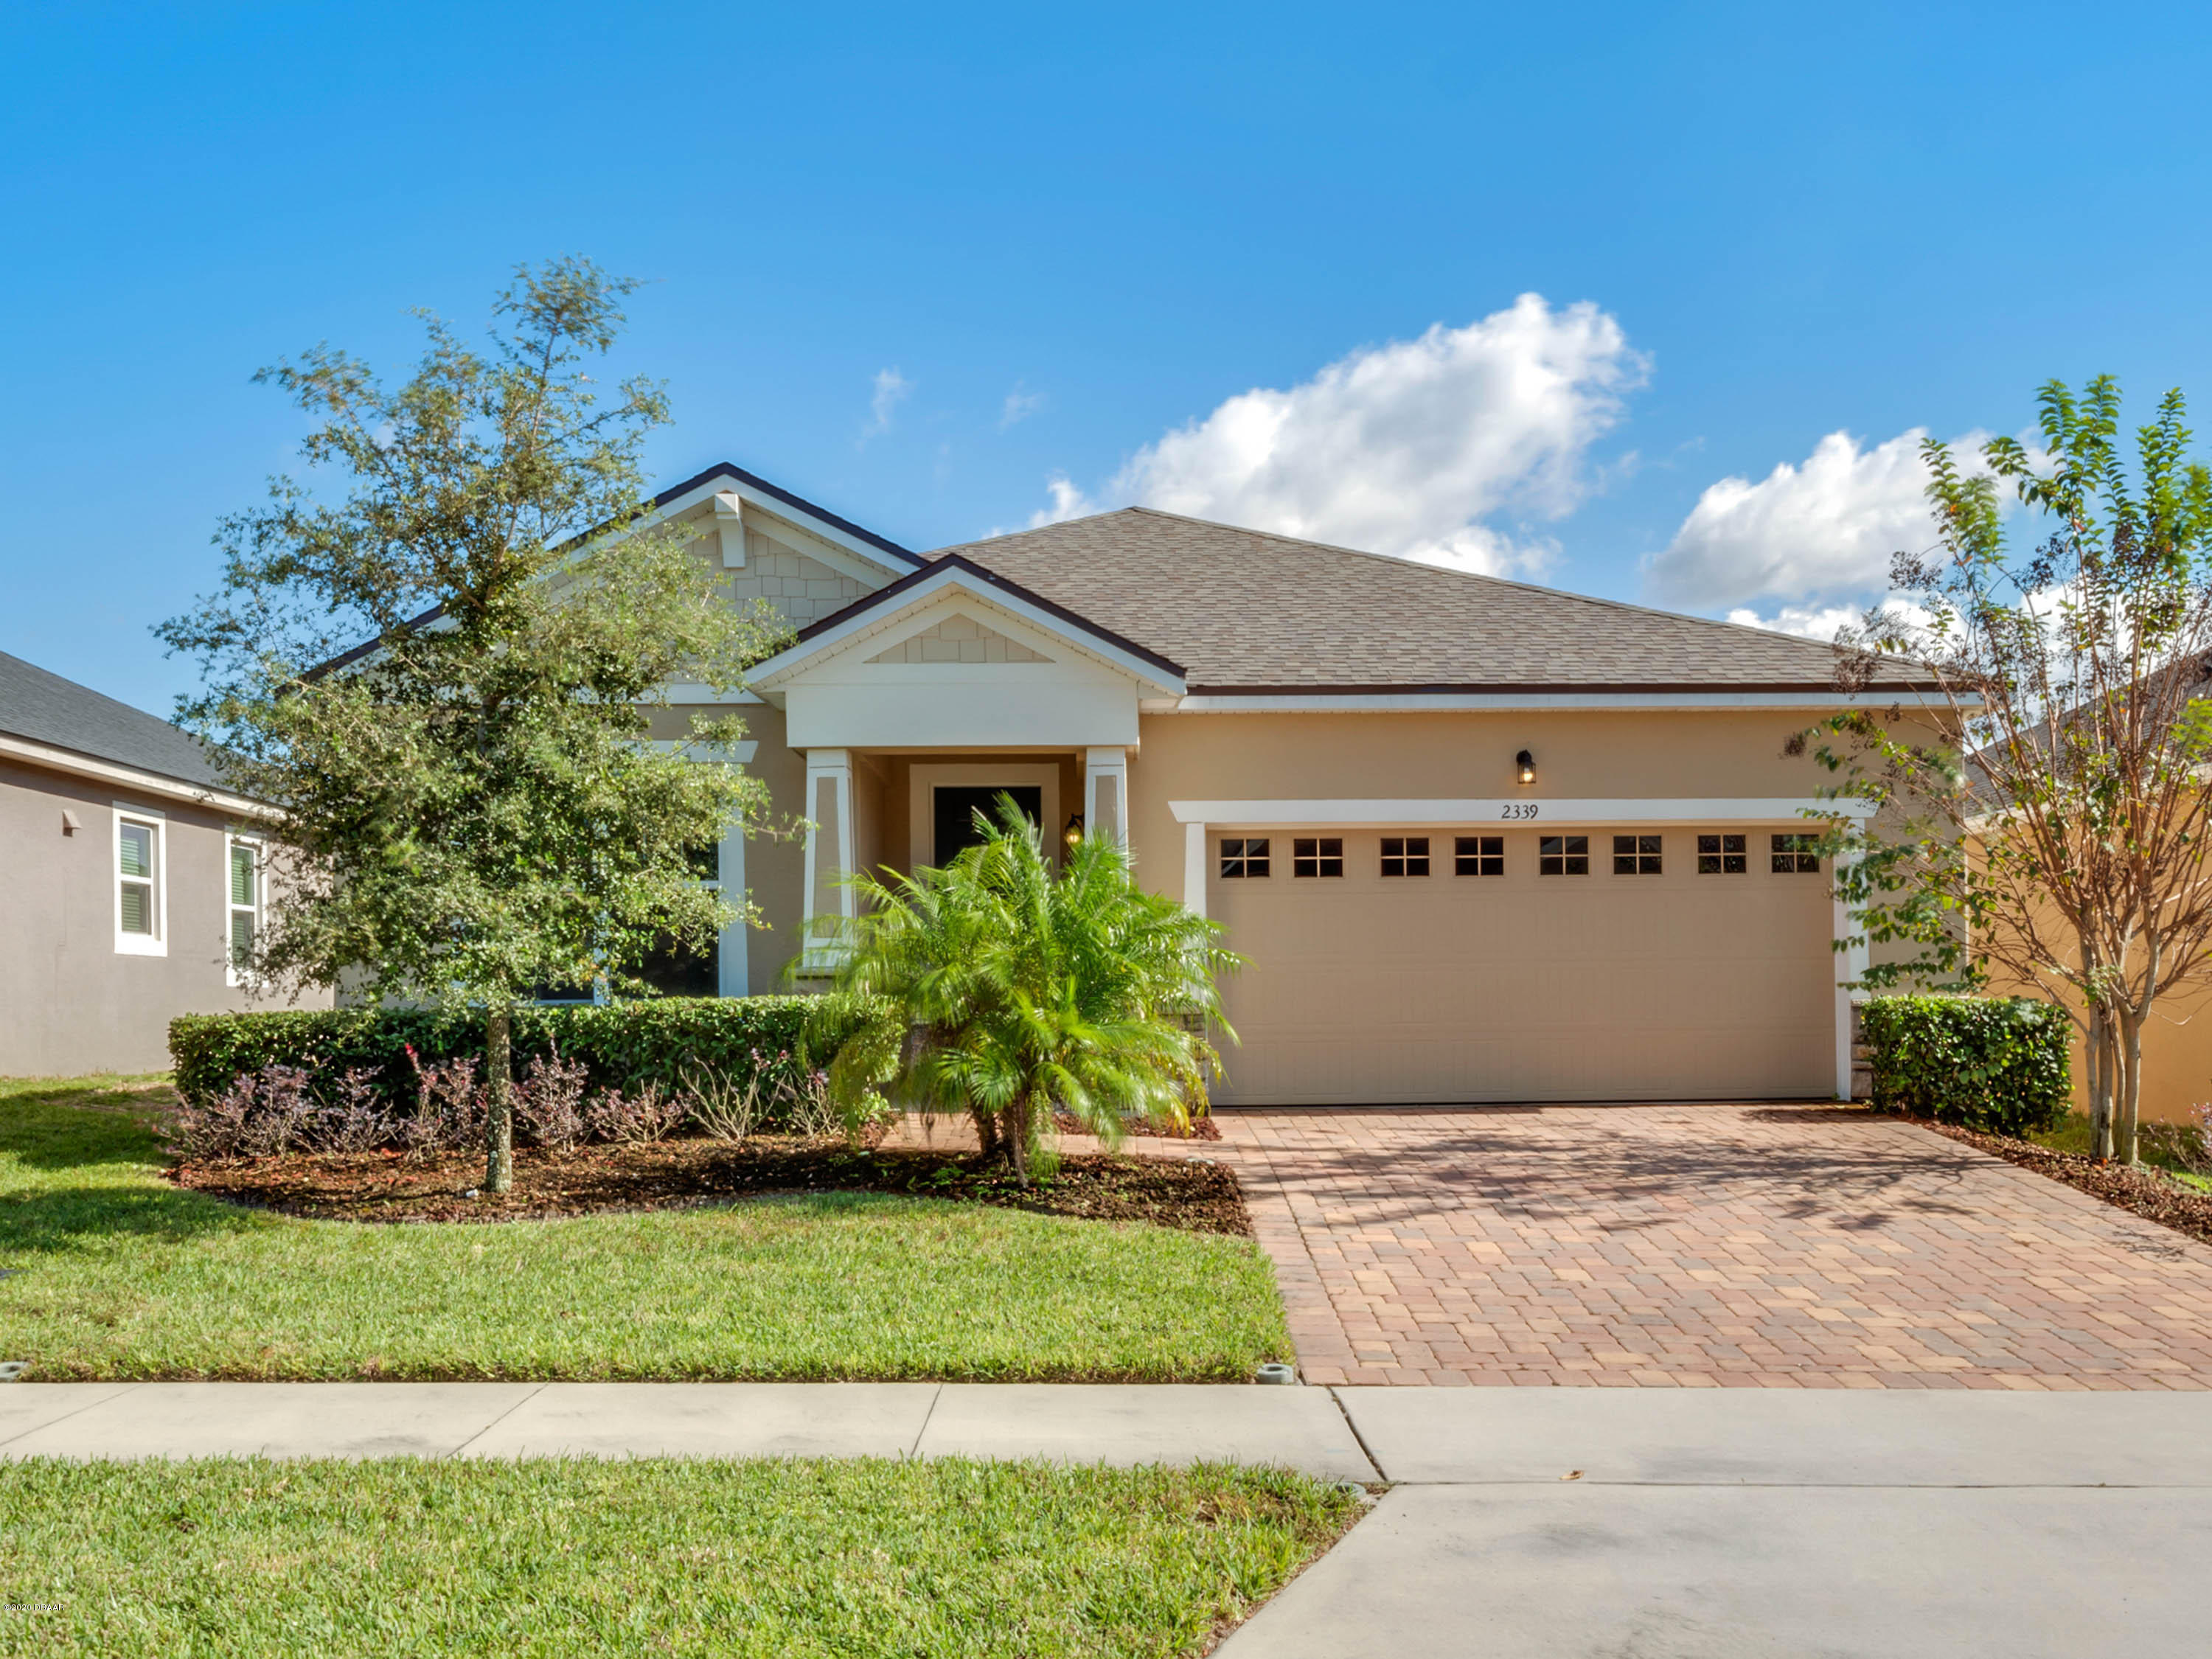 Details for 2339 Kennington Cove, DeLand, FL 32724